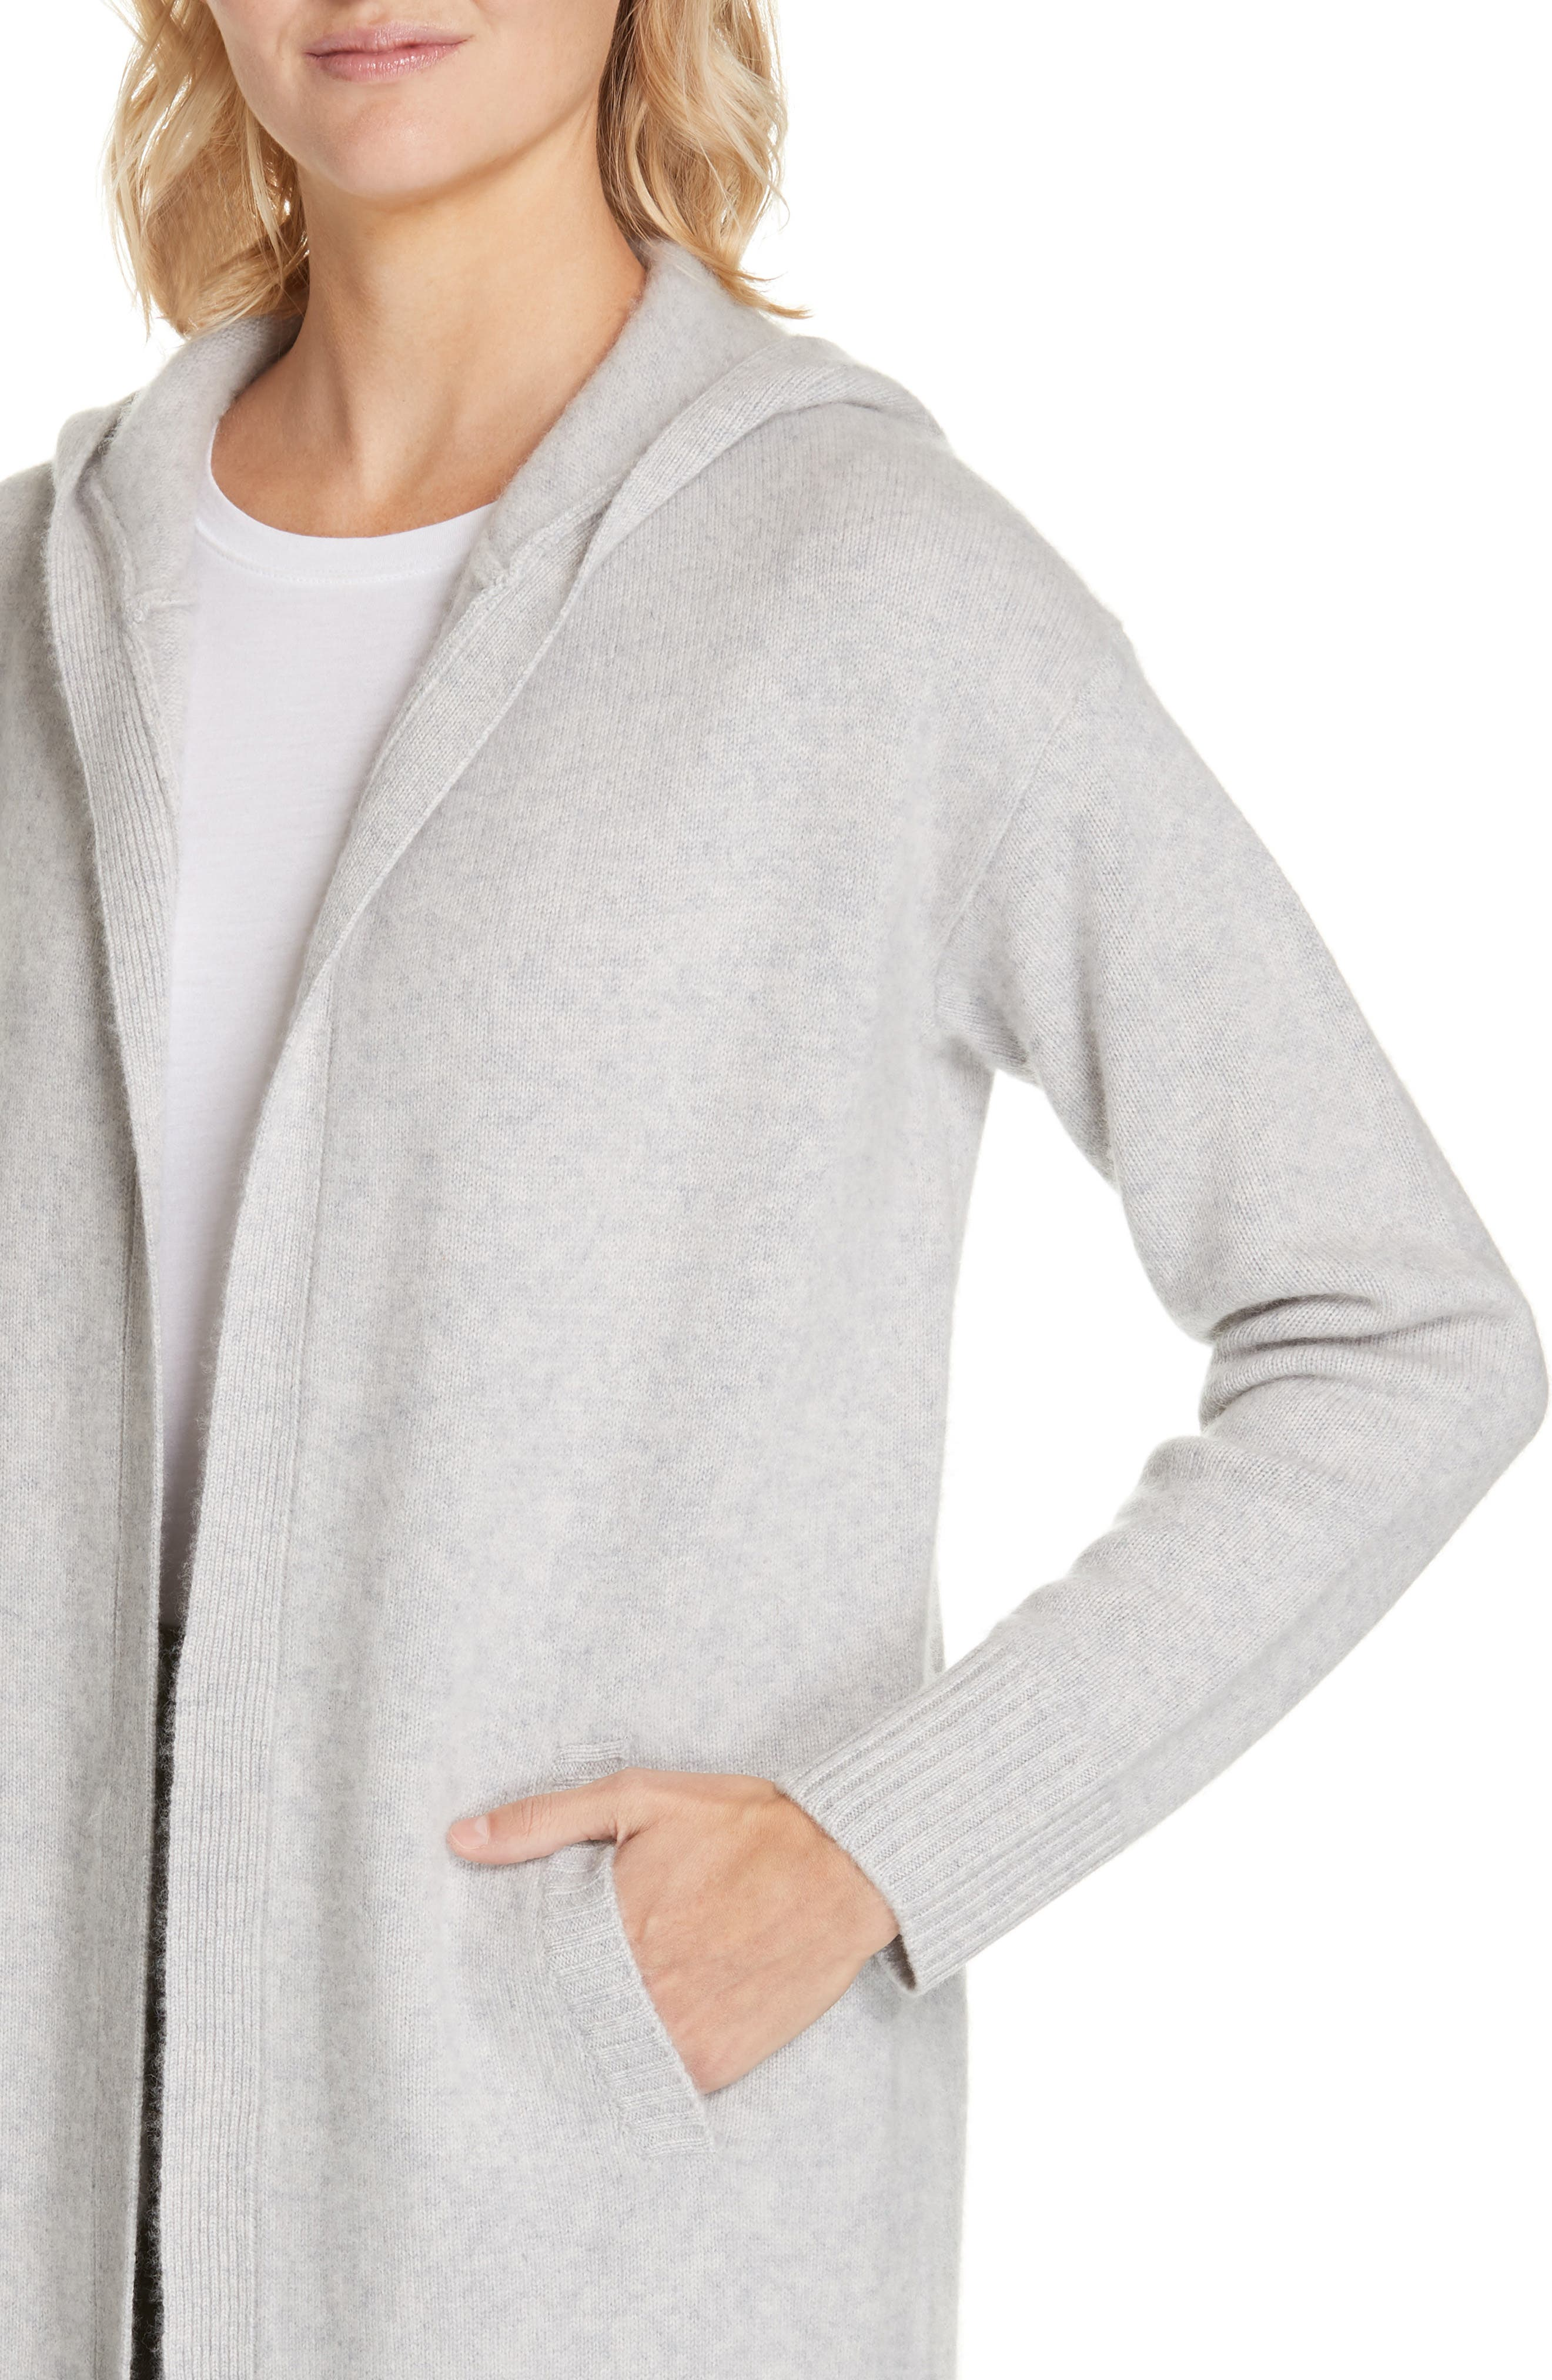 NORDSTROM SIGNATURE,                             Hooded Boiled Cashmere Cardigan,                             Alternate thumbnail 4, color,                             GREY CLAY HEATHER